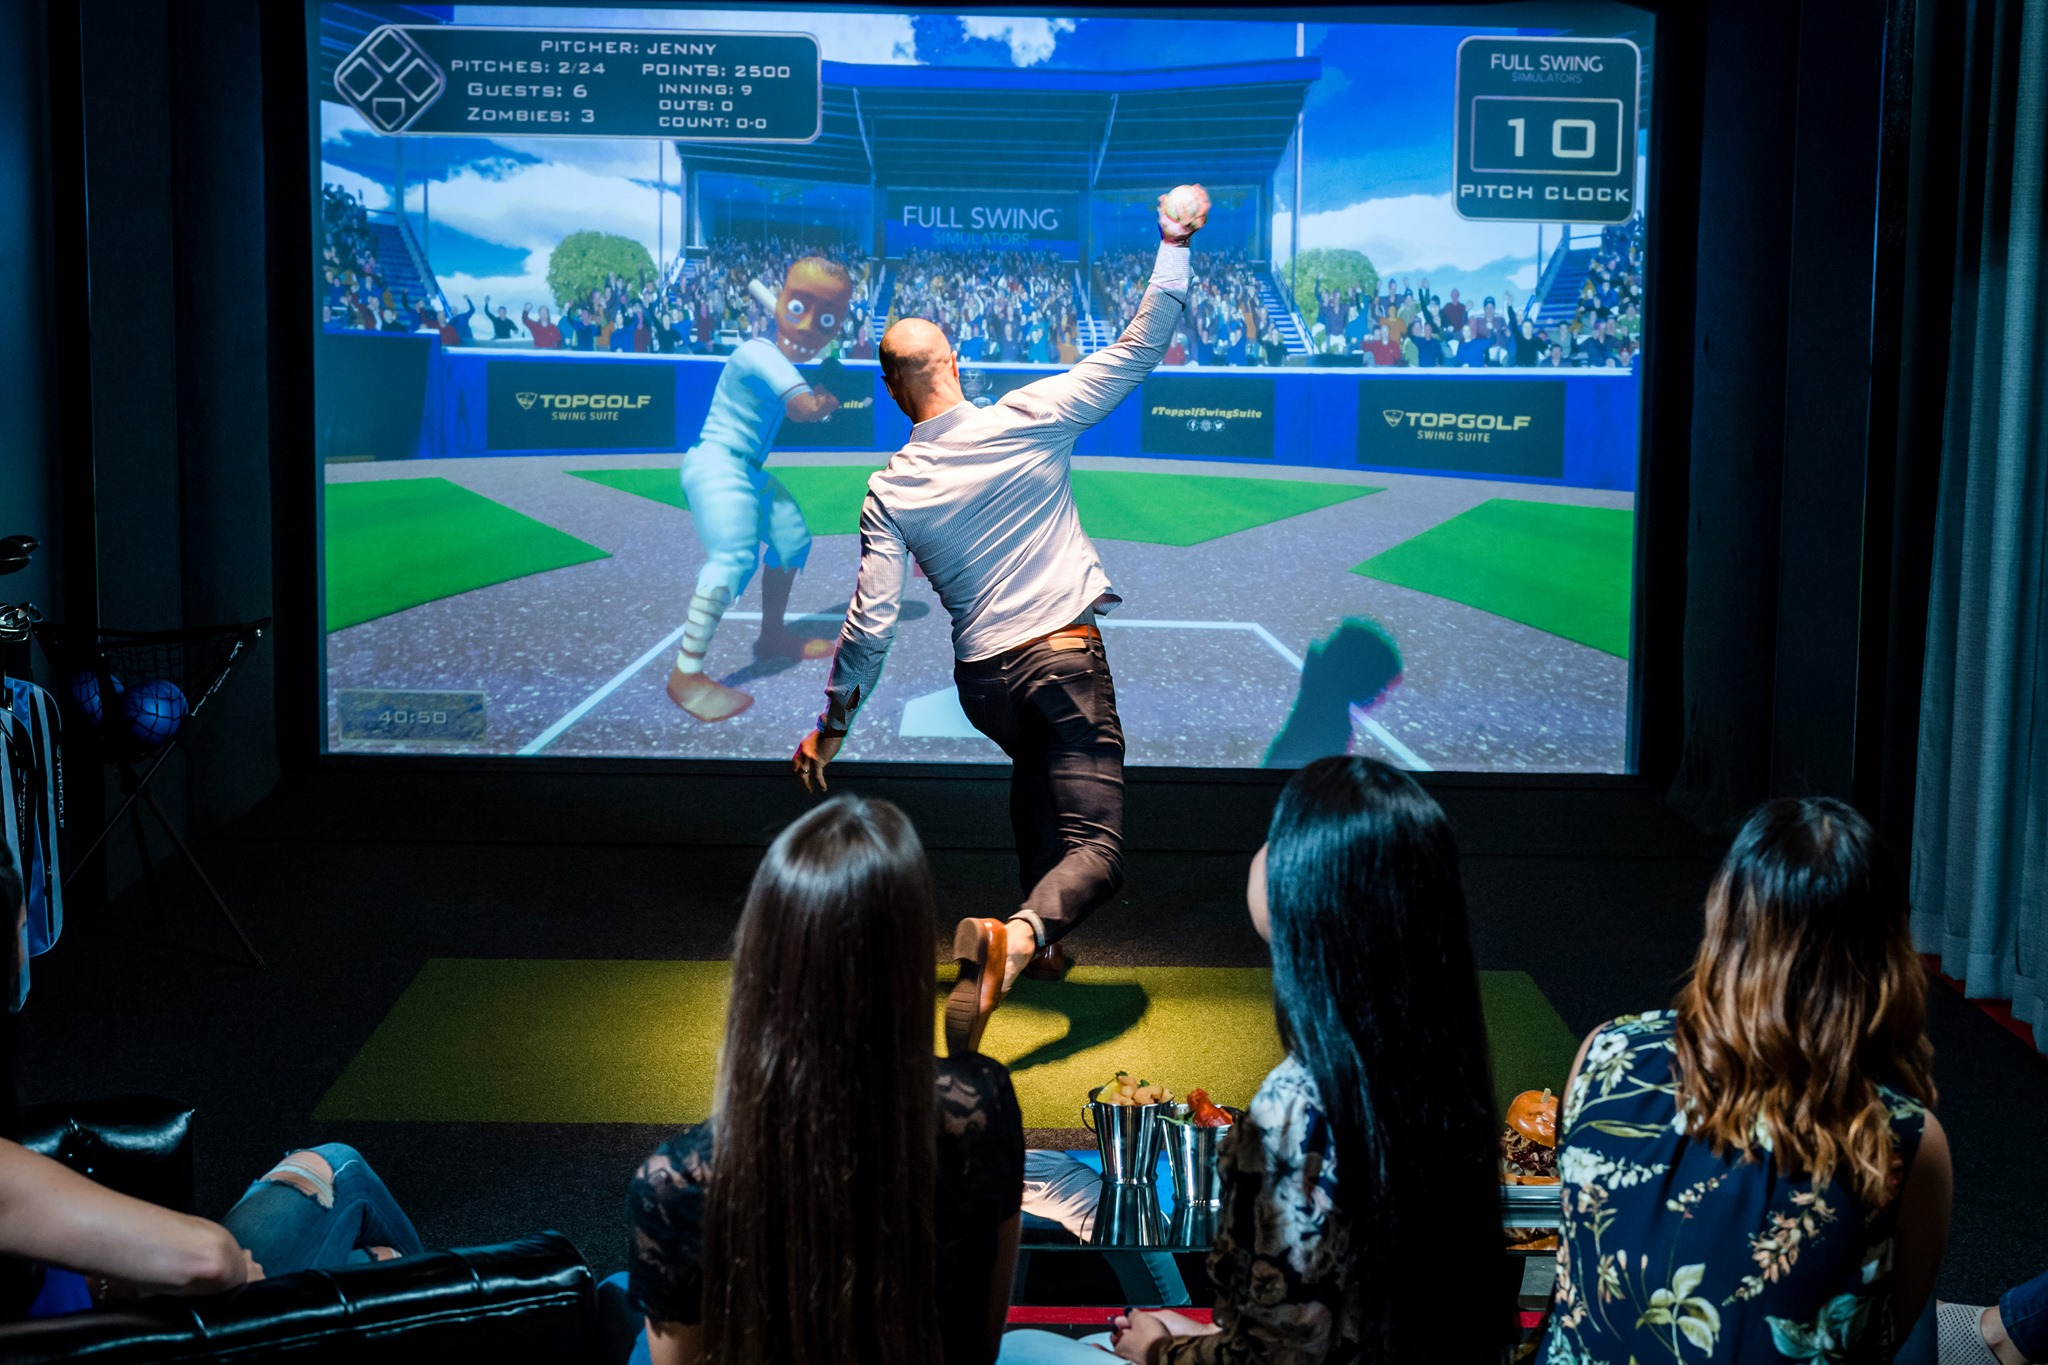 Topgolf Swing Suite Weekday Promotions